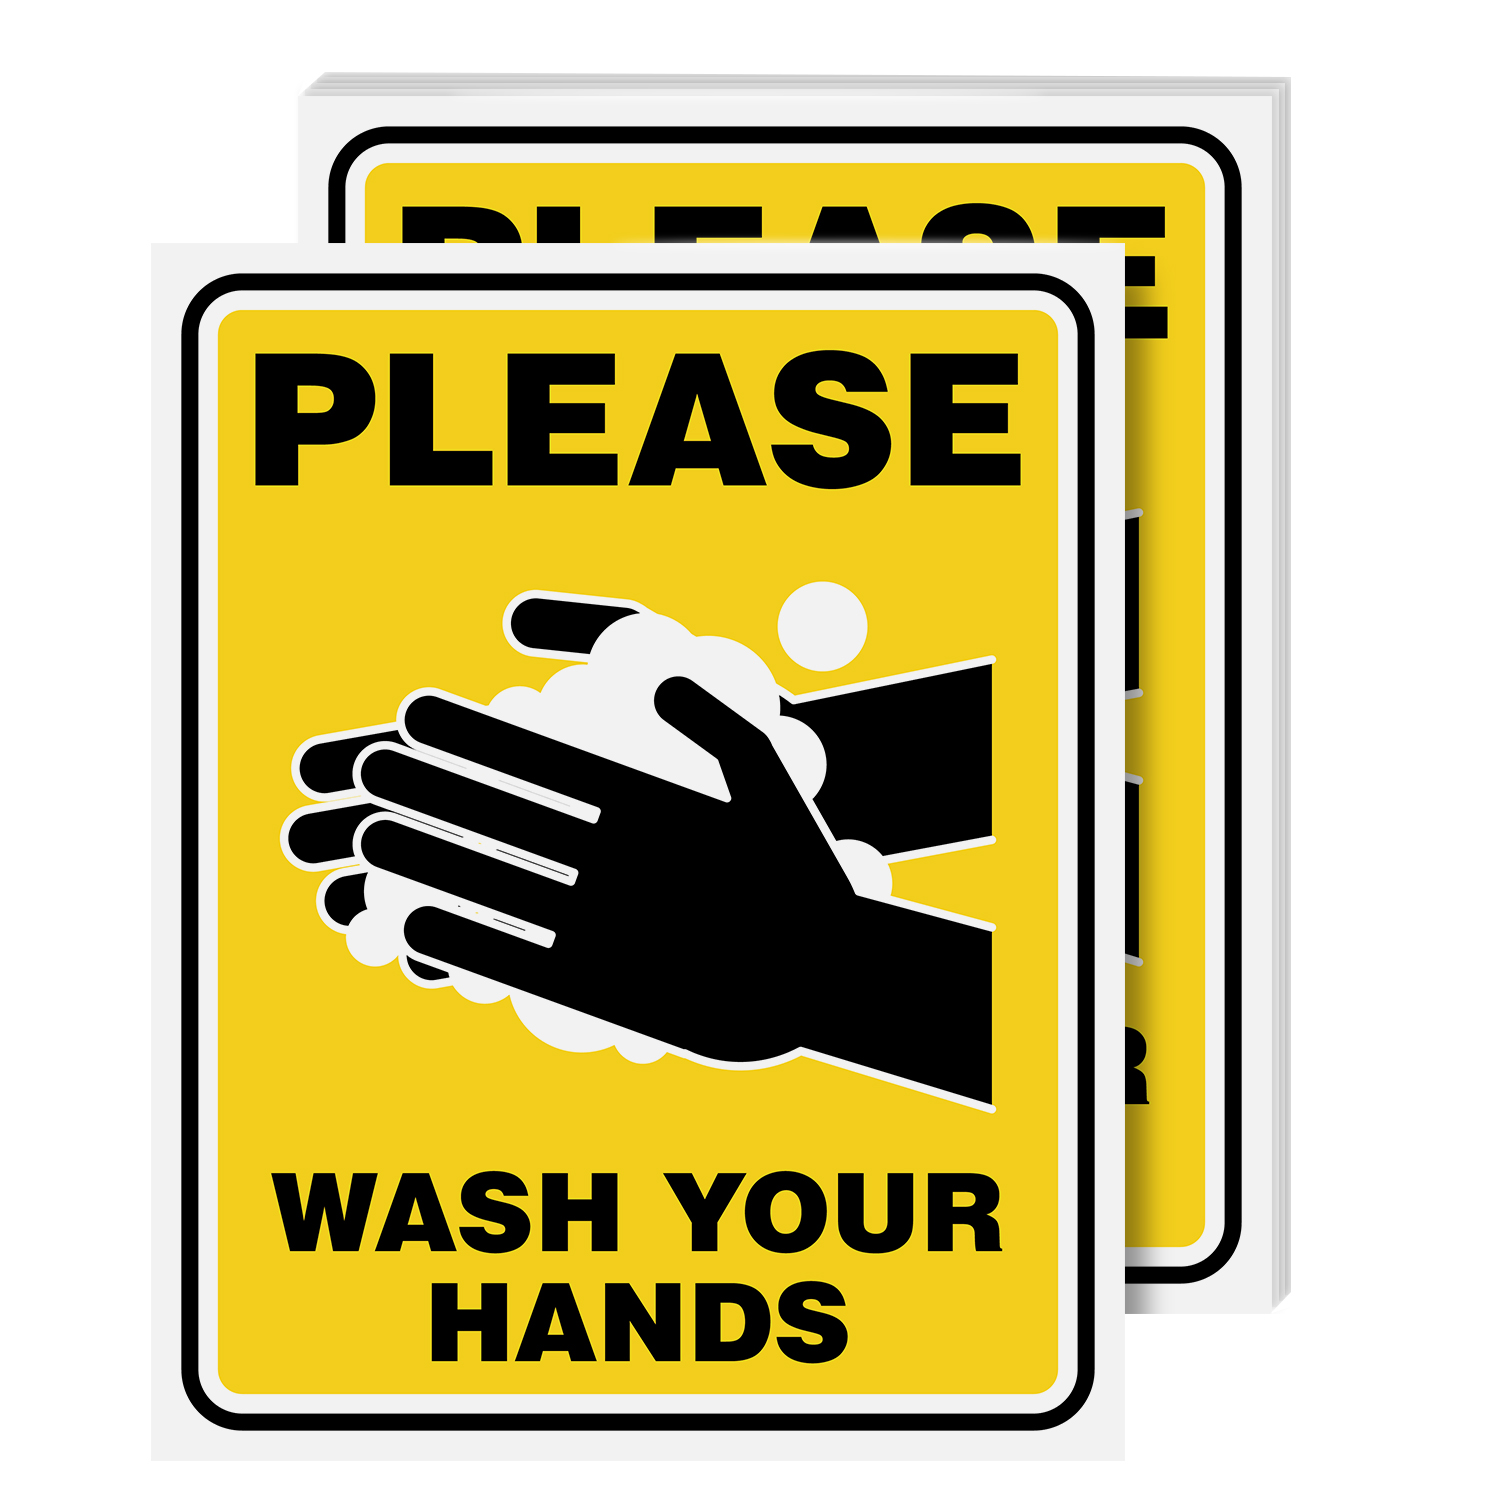 Please Wash Your Hands Laminated Poster